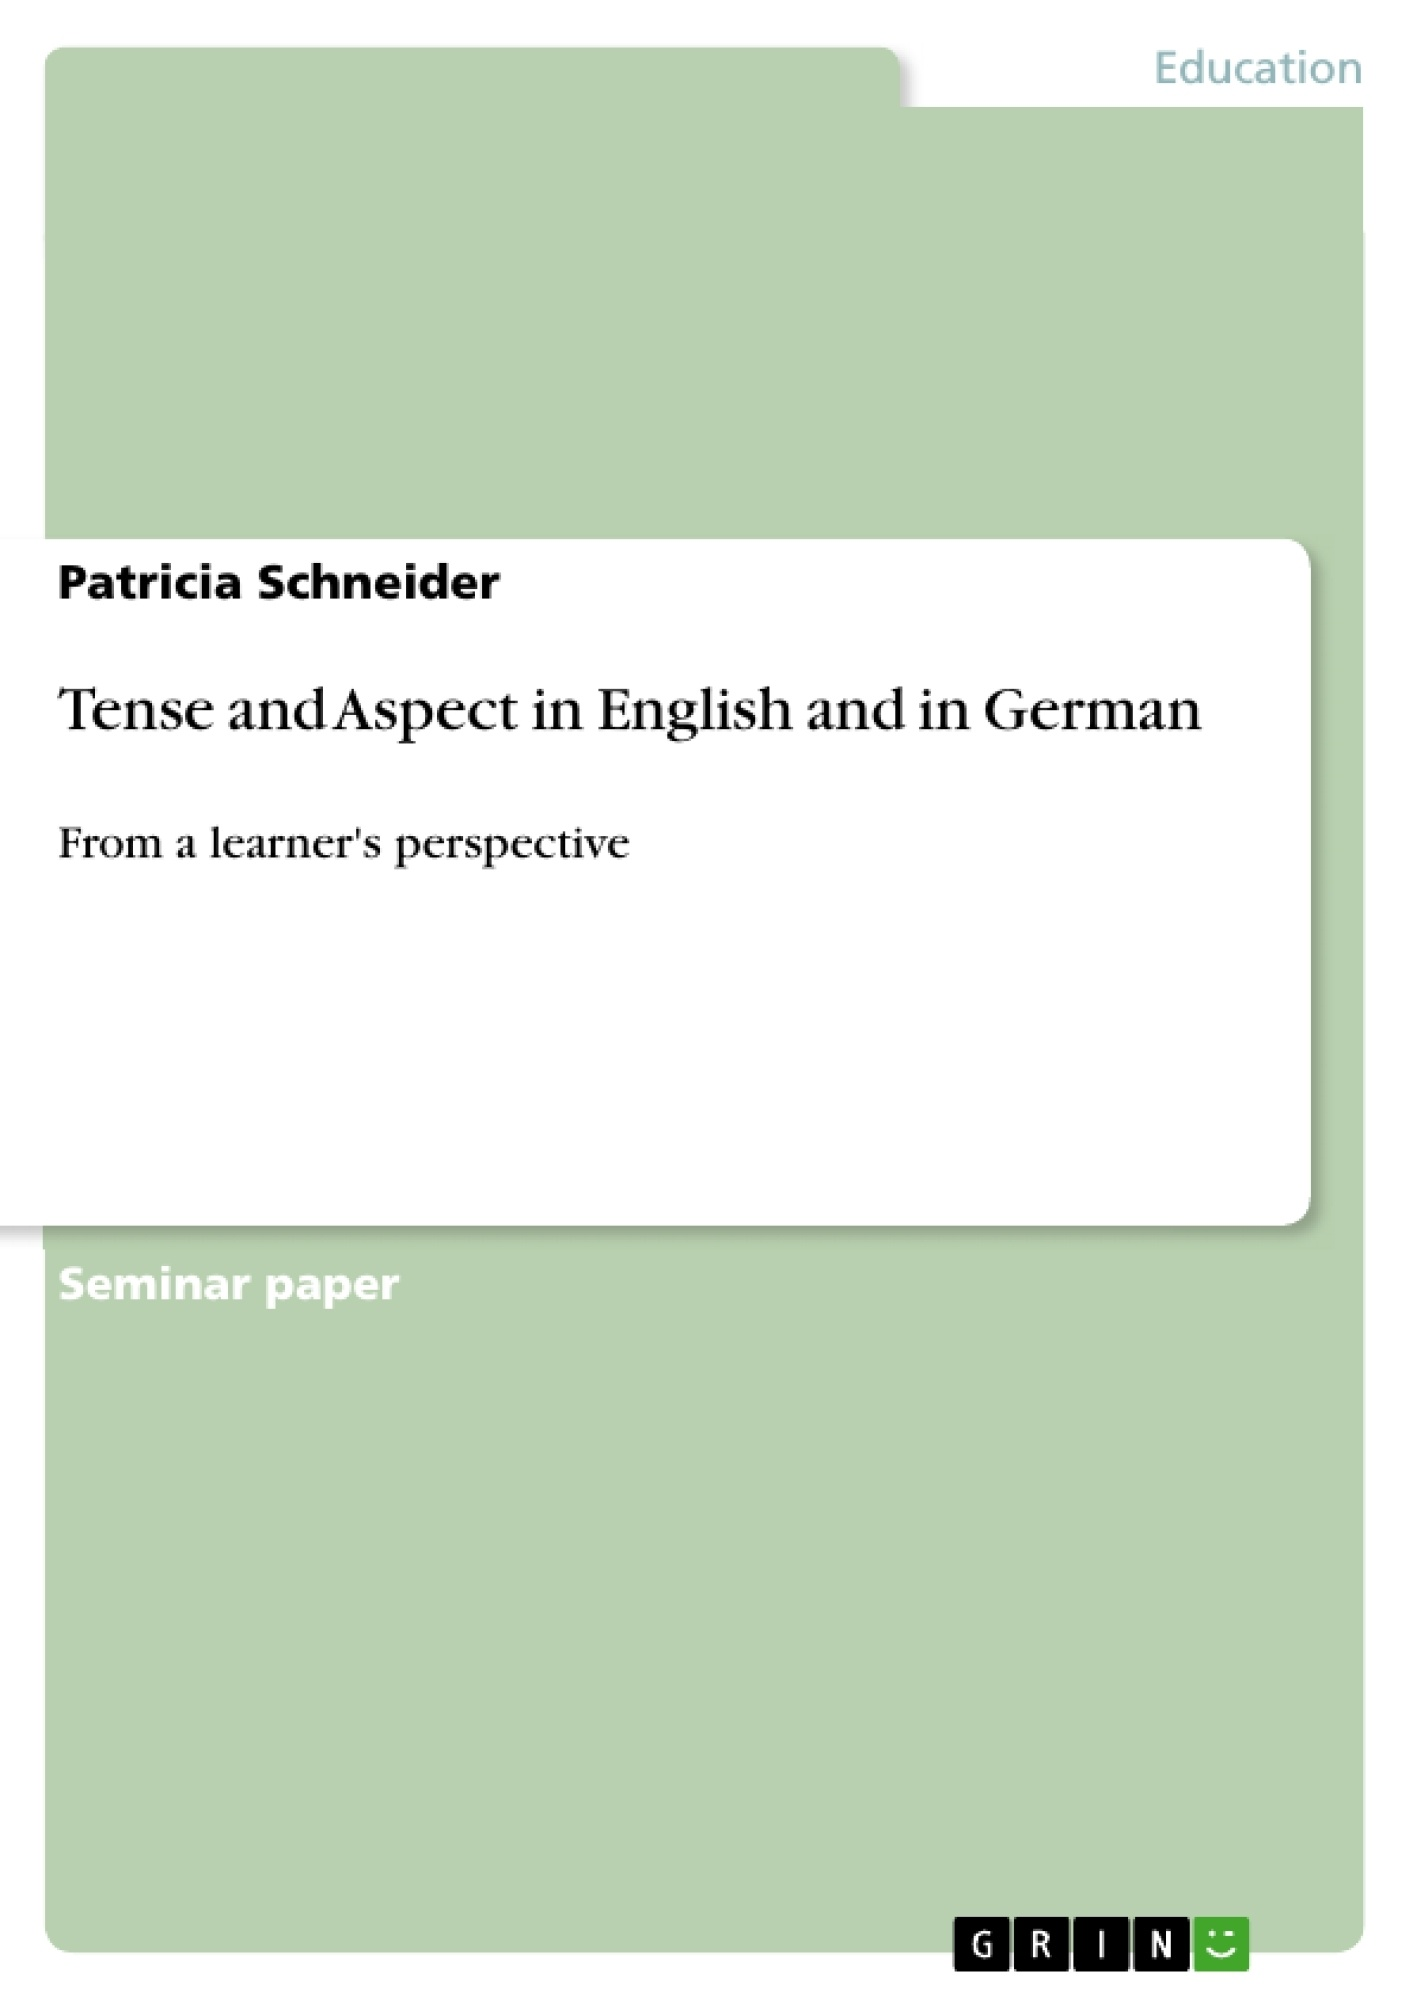 Title: Tense and Aspect in English and in German